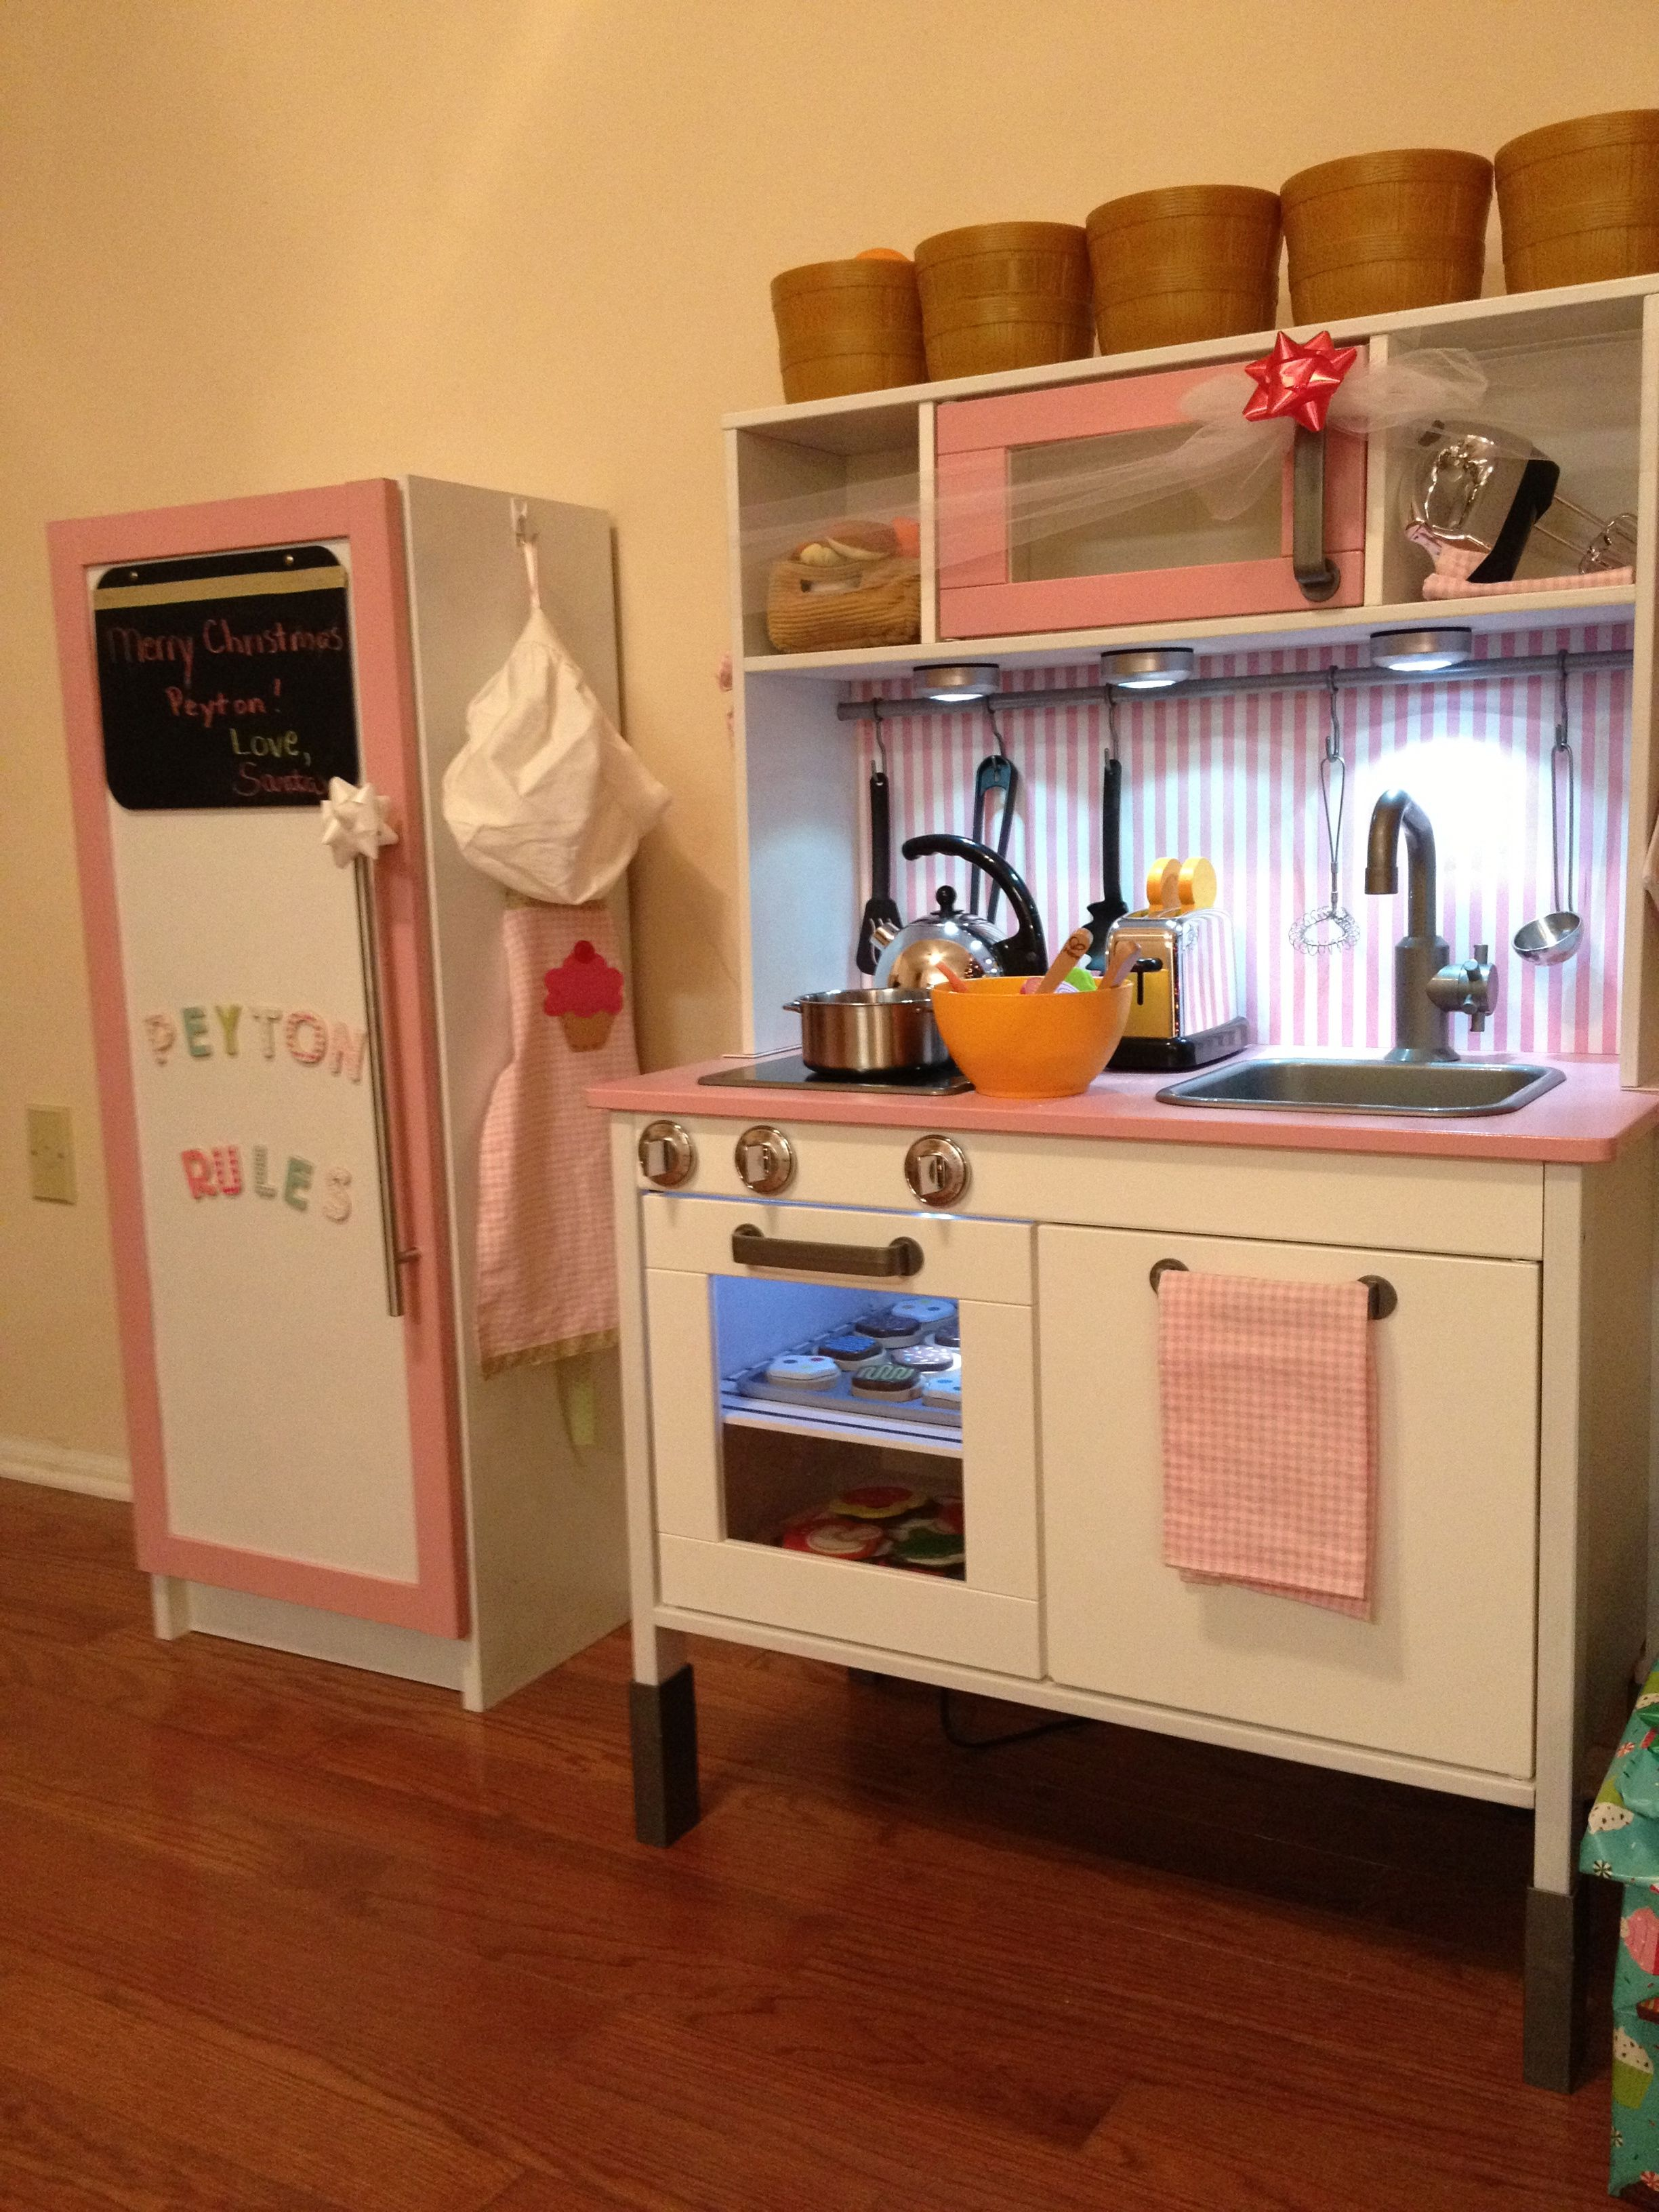 The 5 best diy play kitchens ikea play kitchen plays for Play kitchen set ikea